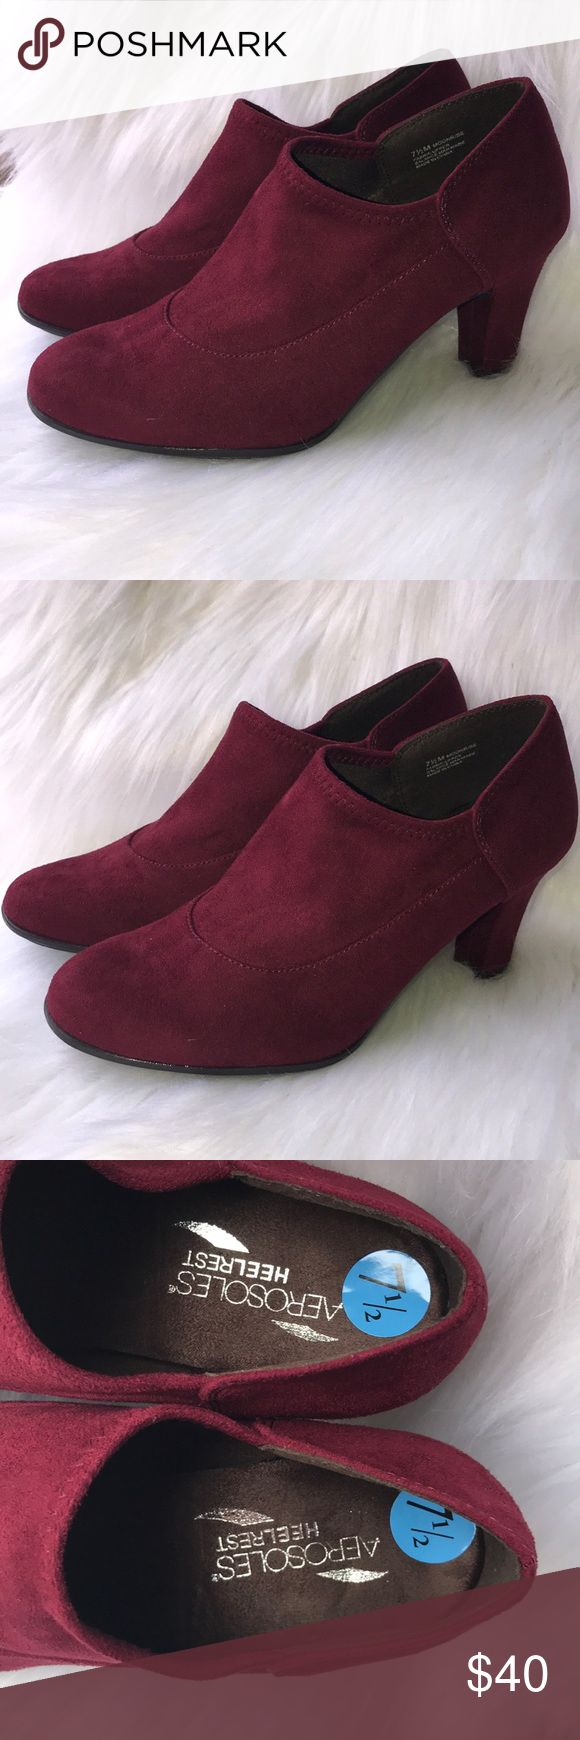 Woman's red velvet ankle boots These r new woman's red velvet ankle boots size 7.5 also available in size 9 AEROSOLES Shoes Ankle Boots & Booties